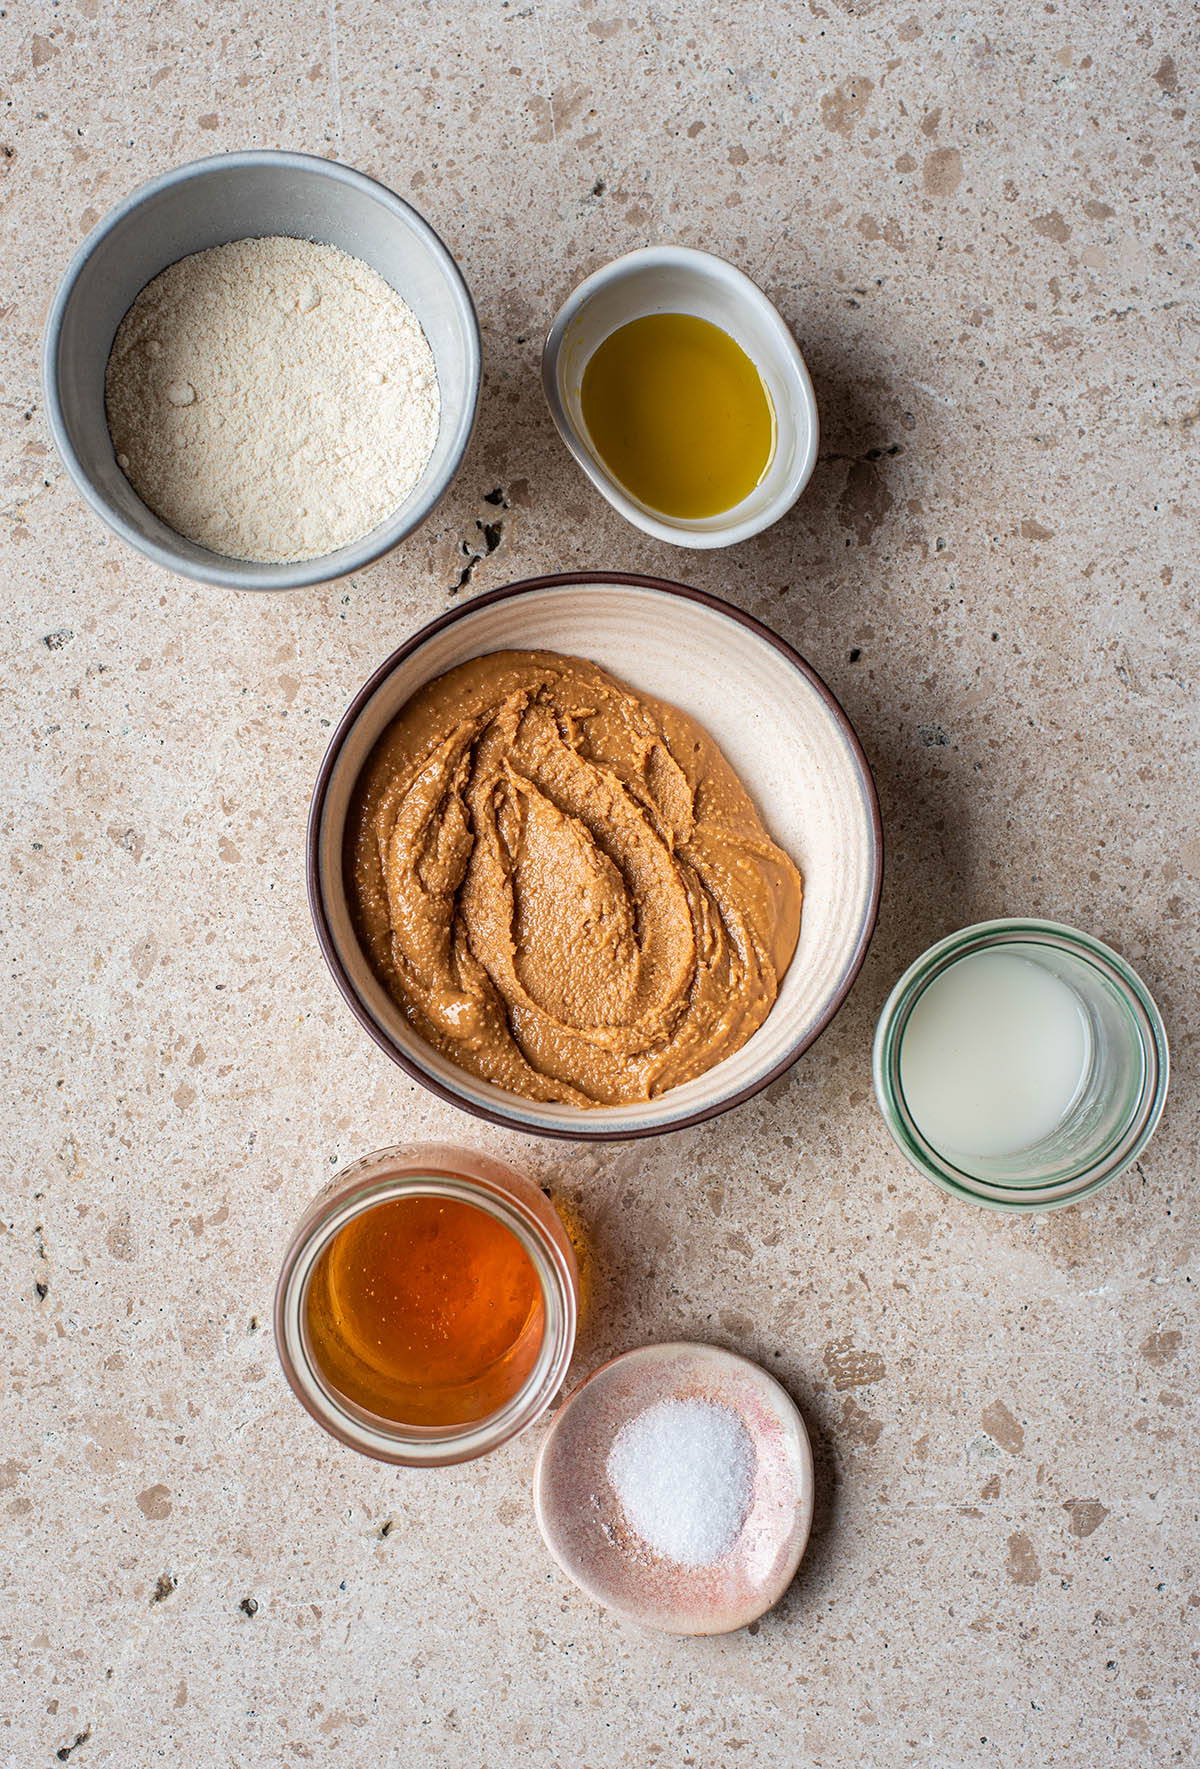 Gluten free peanut butter cookie ingredients: coconut flour, olive oil, unsweetened peanut butter, milk, maple syrup, and salt.